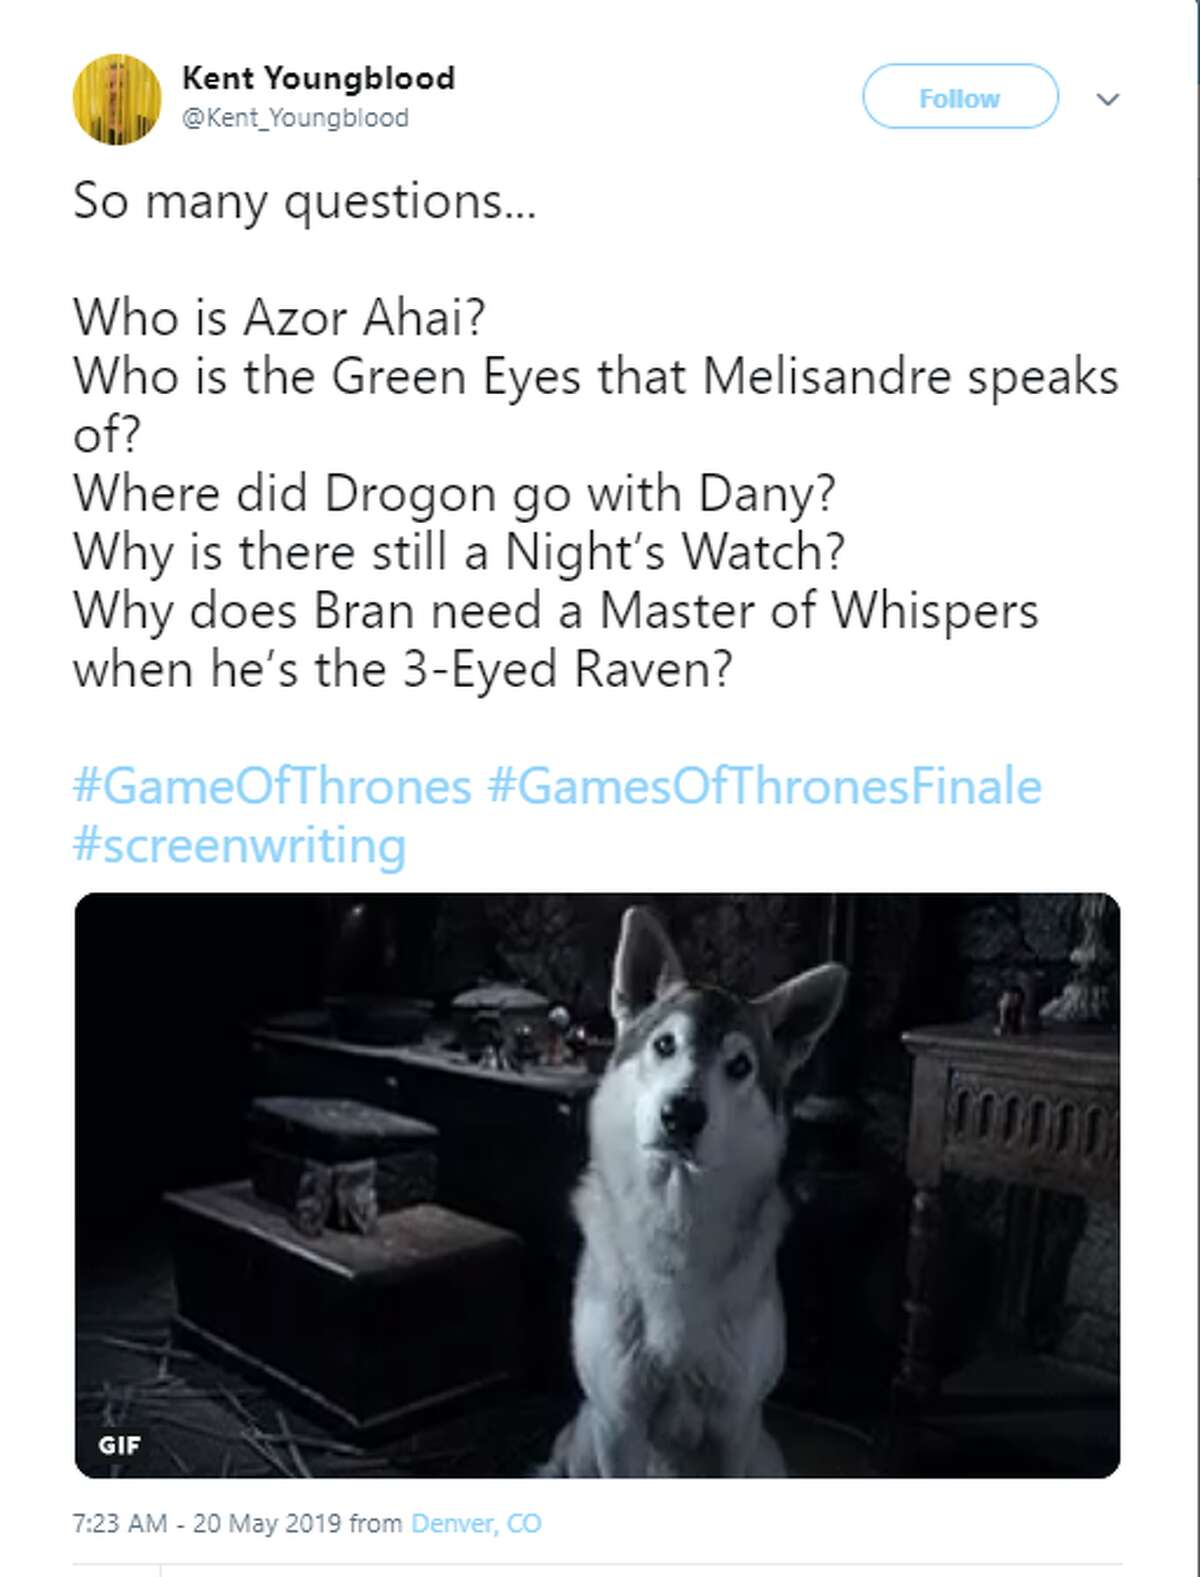 So many questions... Who is Azor Ahai? Who is the Green Eyes that Melisandre speaks of? Where did Drogon go with Dany? Why is there still a Night's Watch? Why does Bran need a Master of Whispers when he's the 3-Eyed Raven? #GameOfThrones #GamesOfThronesFinale #screenwriting Twitter account: @Kent_Youngblood